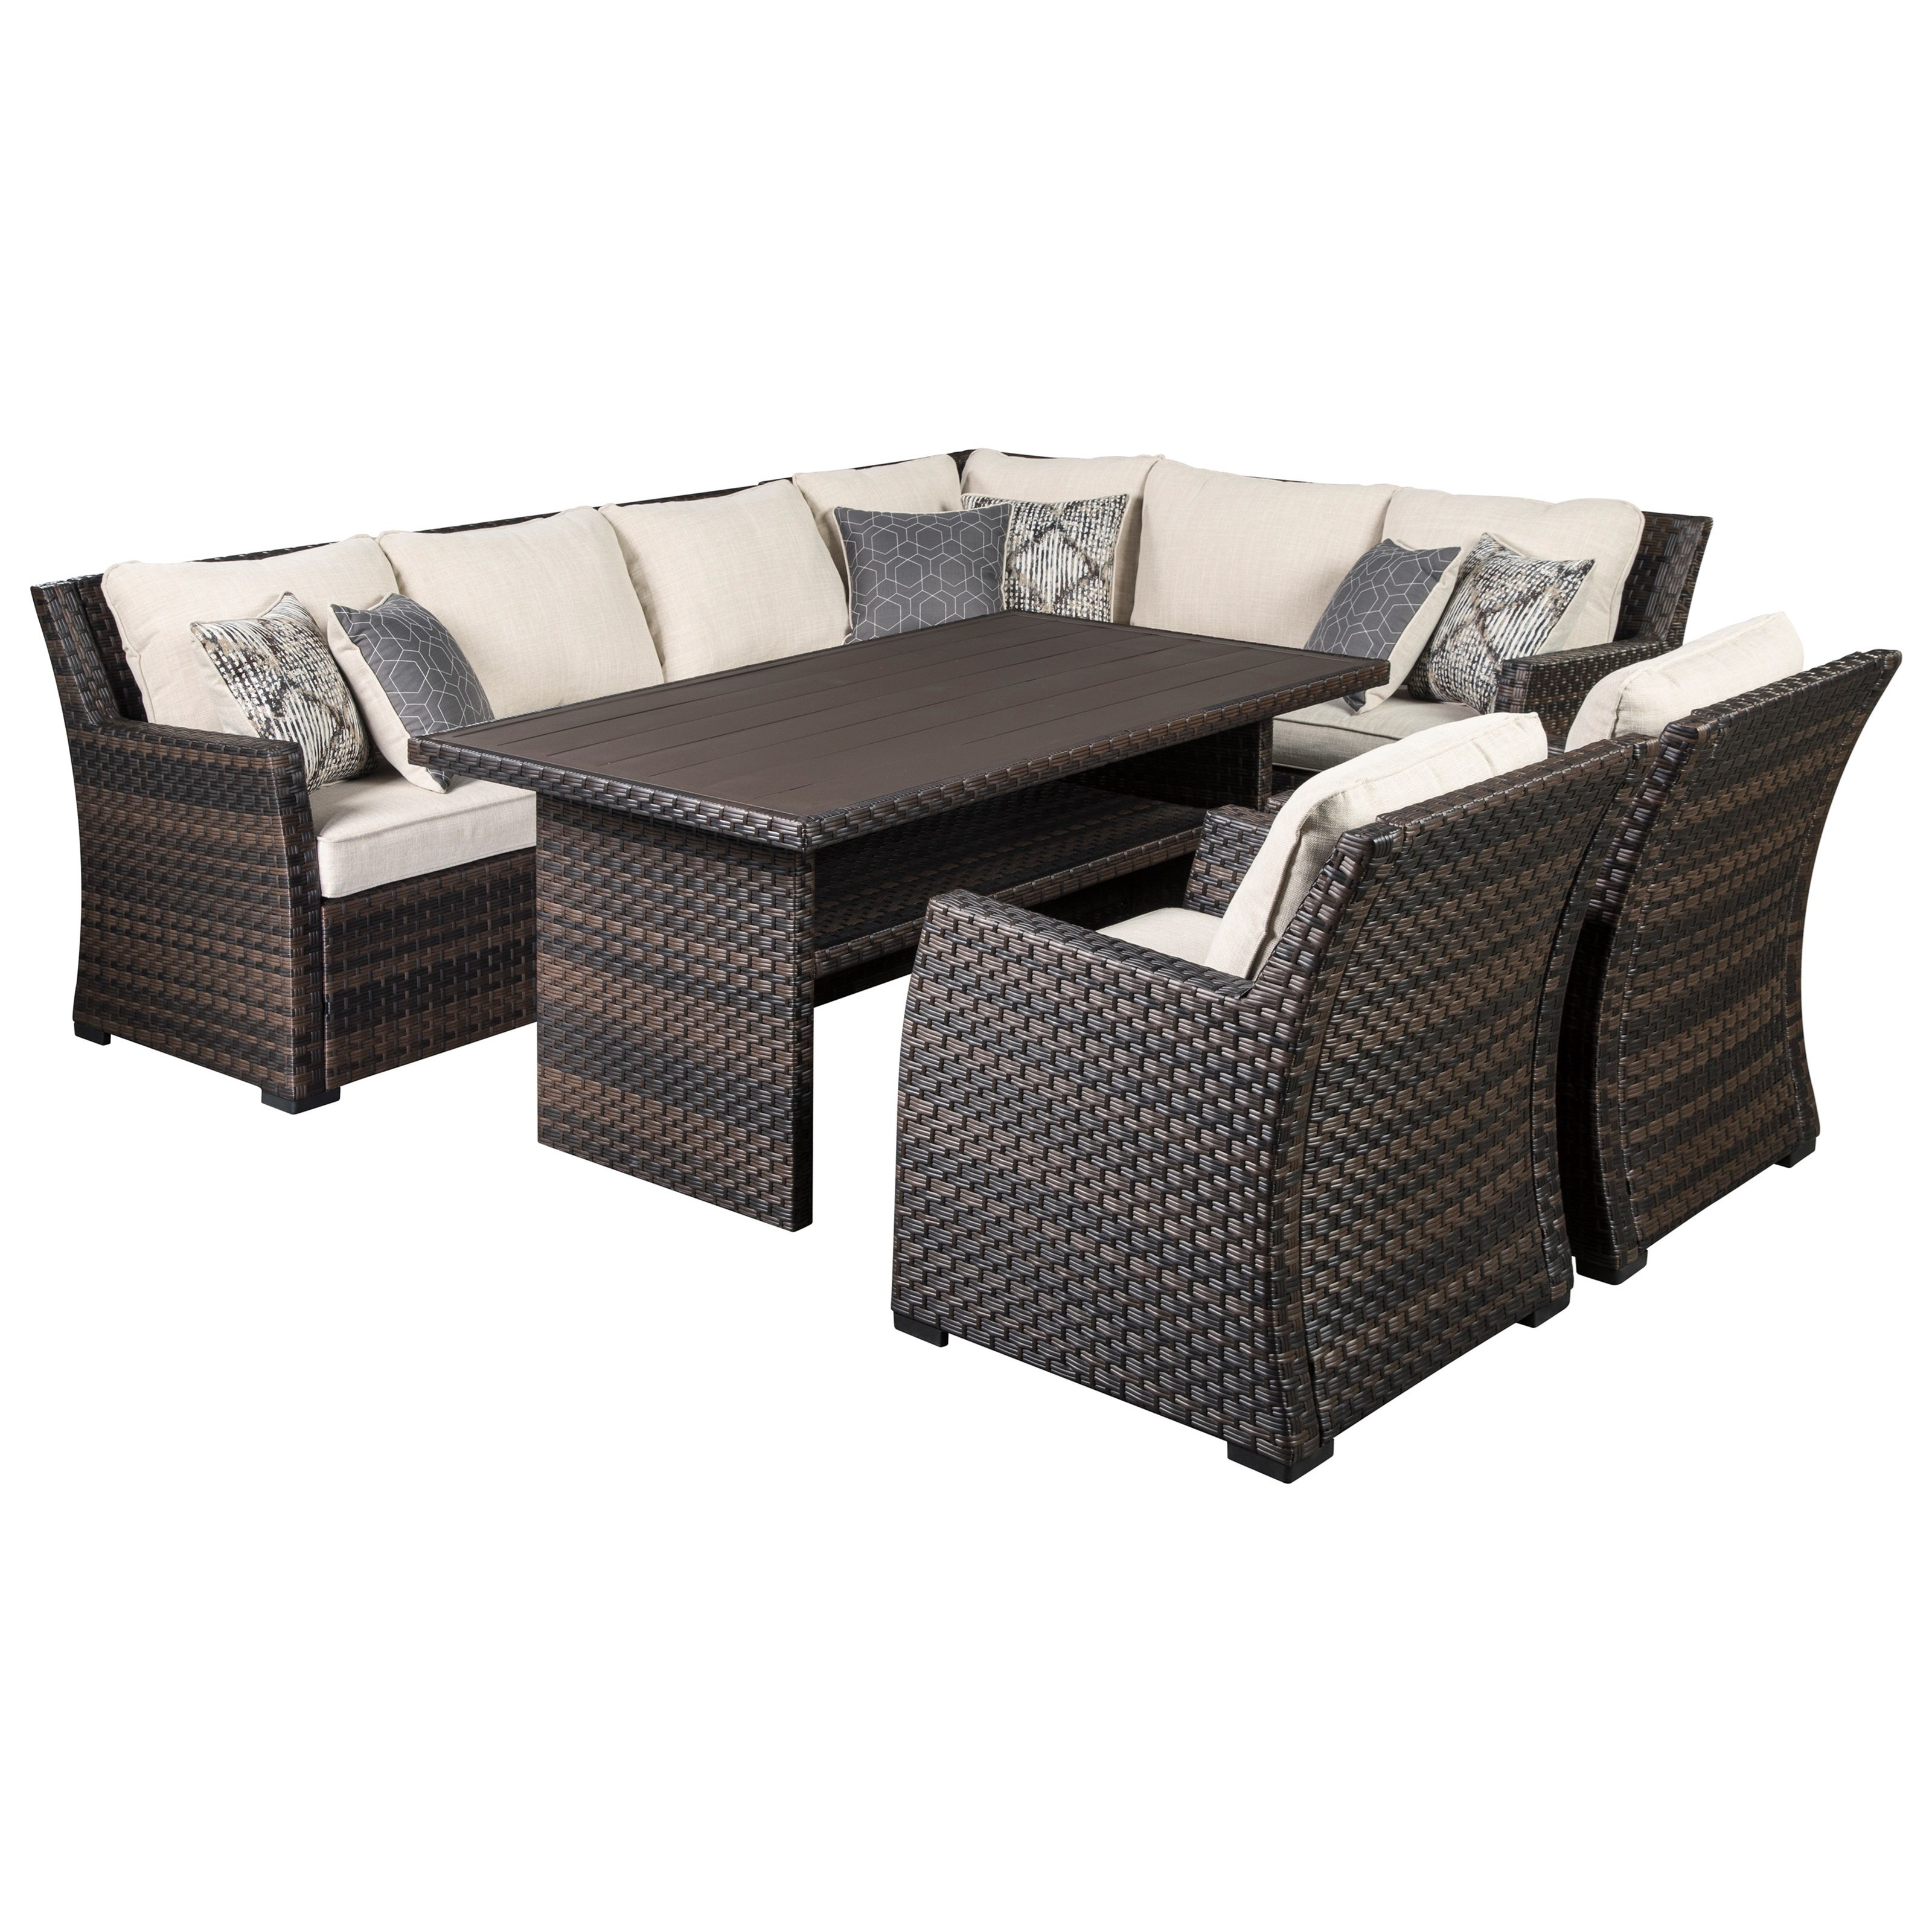 Easy Isle Outdoor Sectional with Table & 2 Chairs by Signature at Walker's Furniture